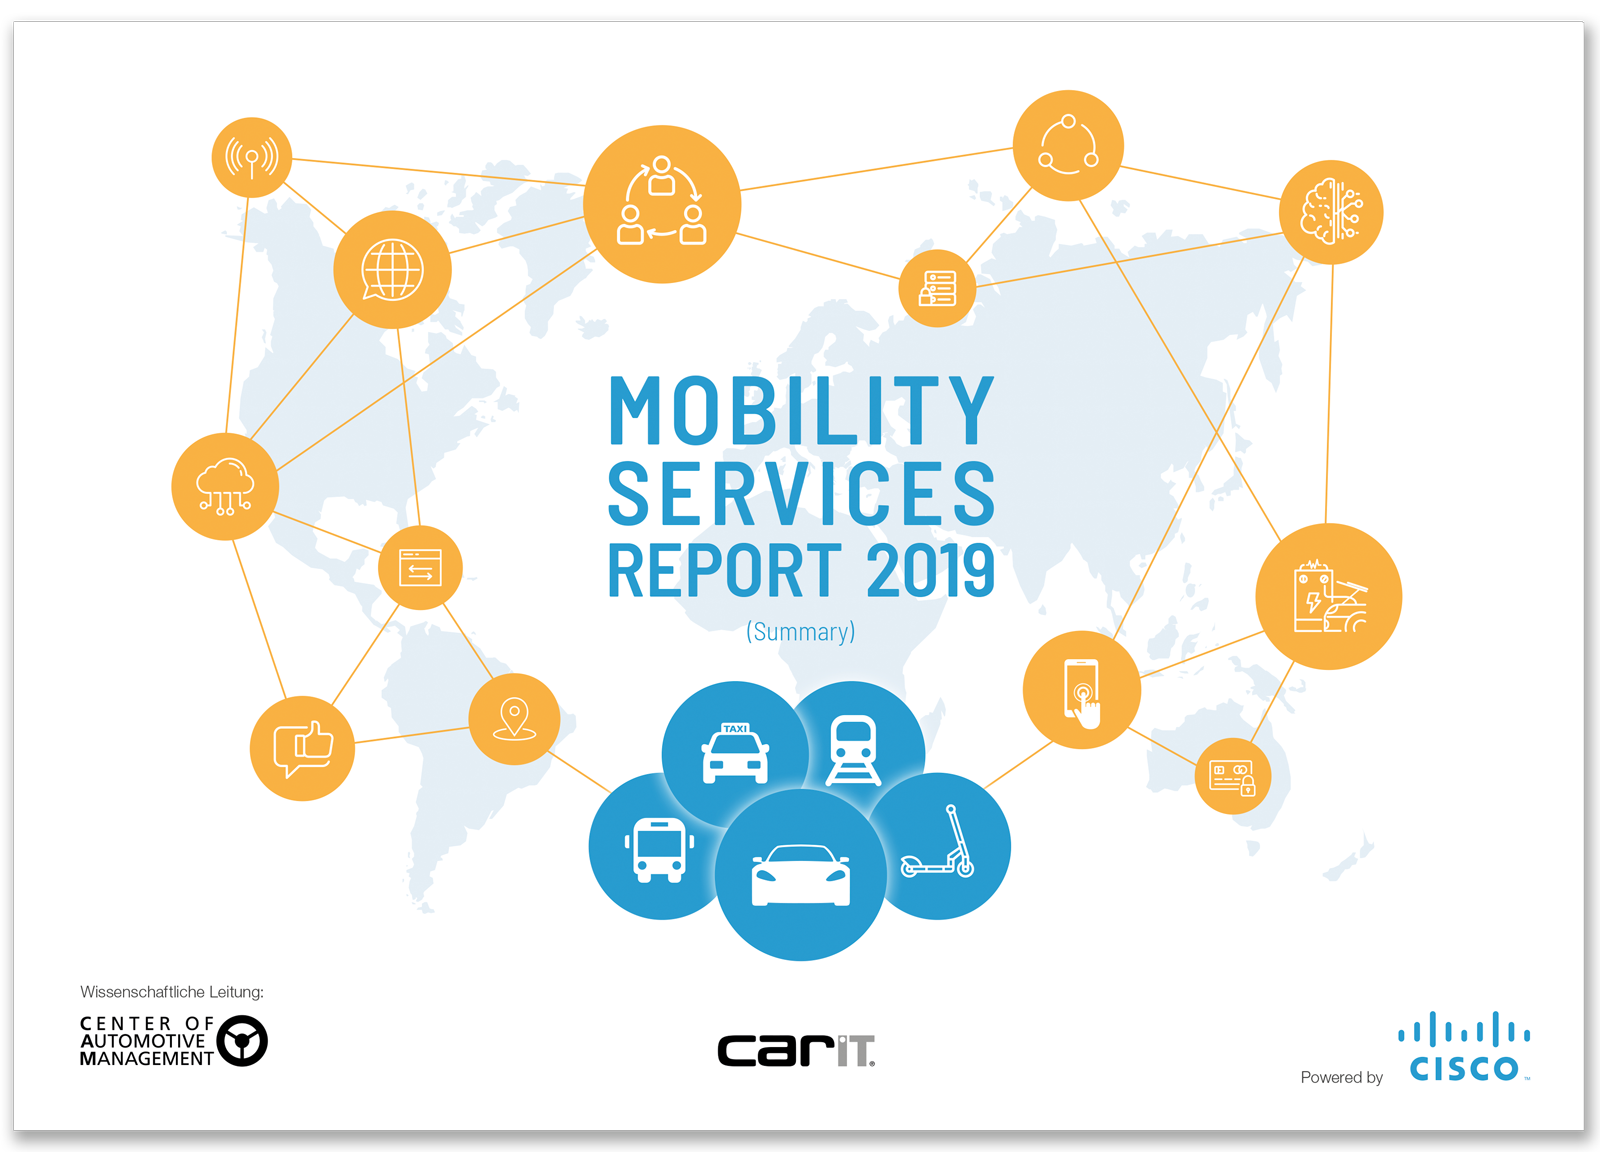 Mobility Services Report 2019 Anlaufbild